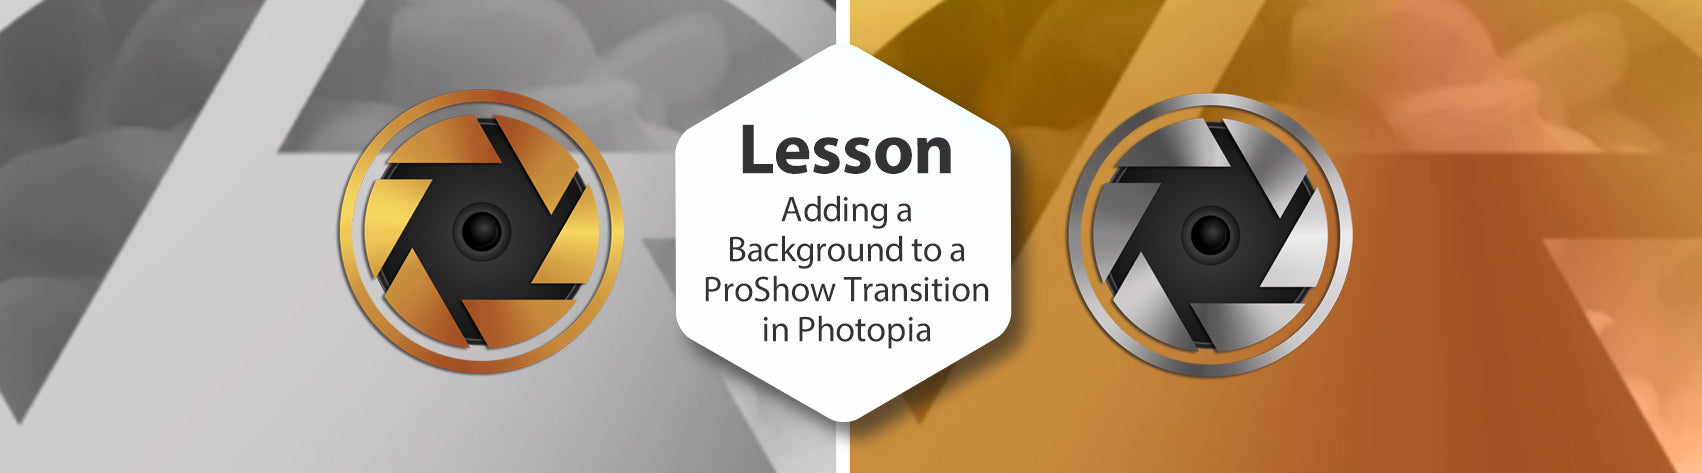 Adding a Background to ProShow Transitions in Photopia